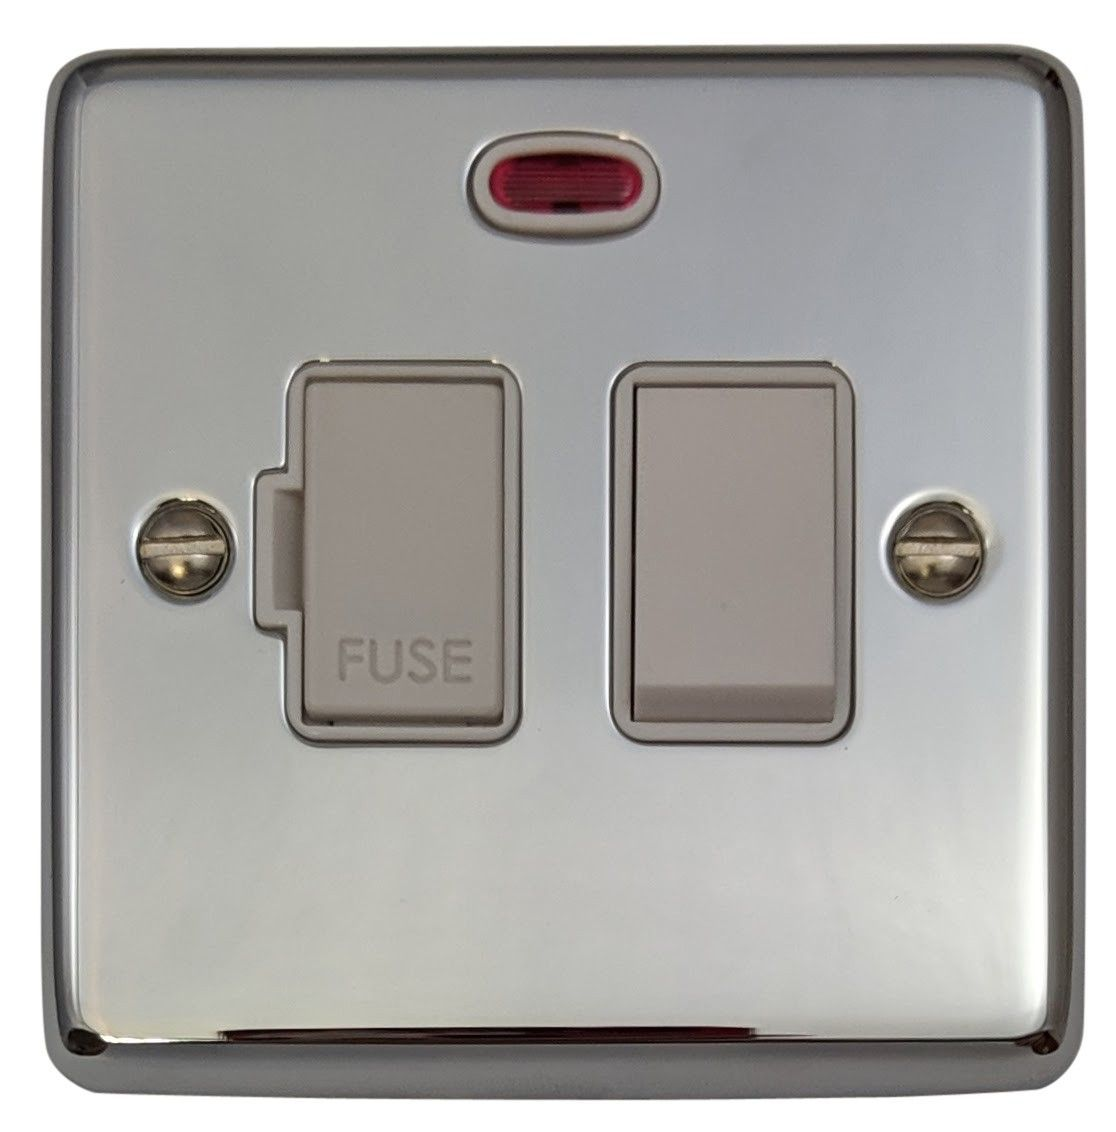 G&H CC27W Standard Plate Polished Chrome 1 Gang Fused Spur 13A Switched & Neon